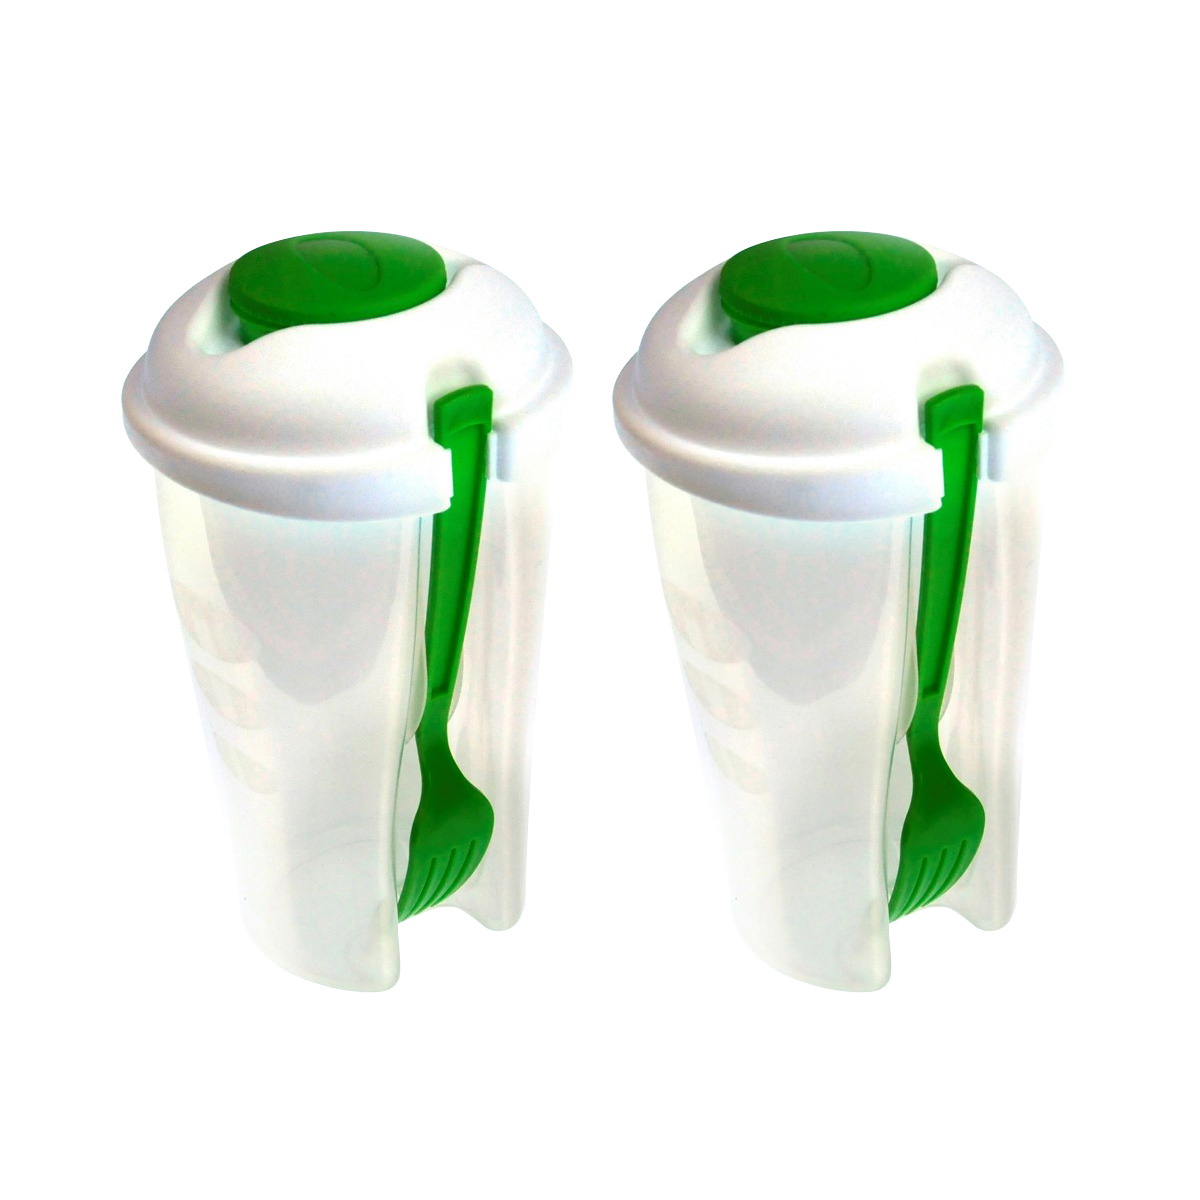 IAG-Salad-Or-Lunch-To-Go-Container-With-Fork-And-Dressing-Cup-Green-1200×1200